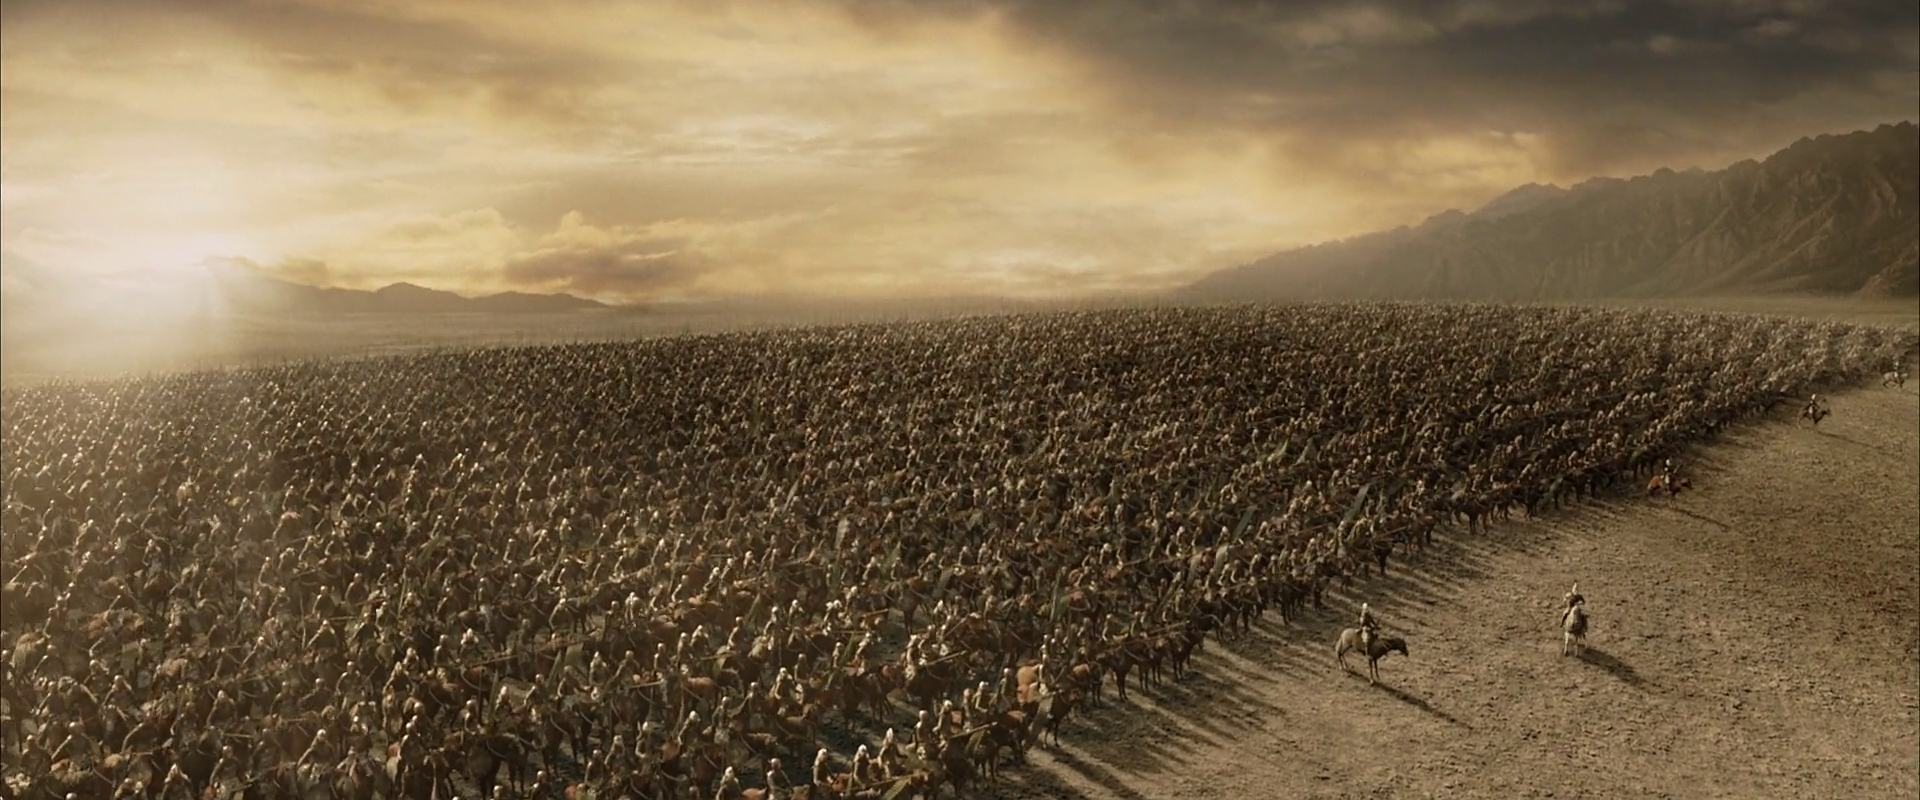 The_battle_of_the_Pelennor_Fields